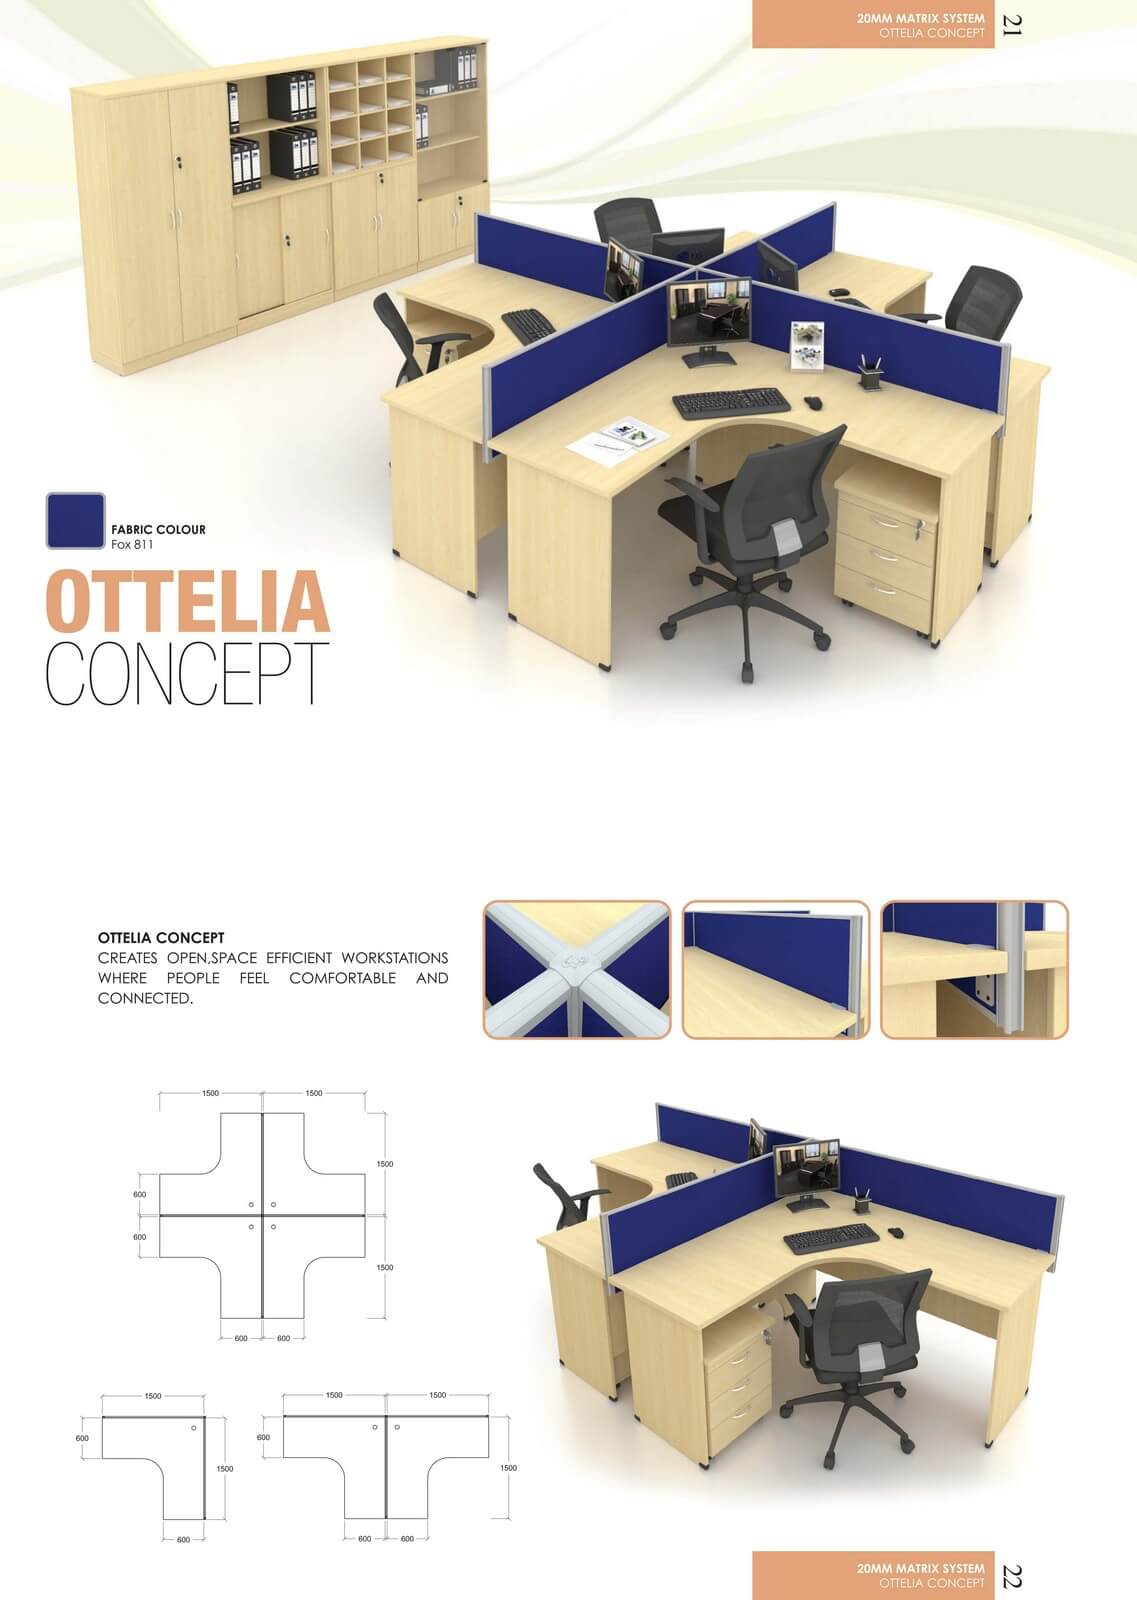 Office Workstation Ottelia Concept